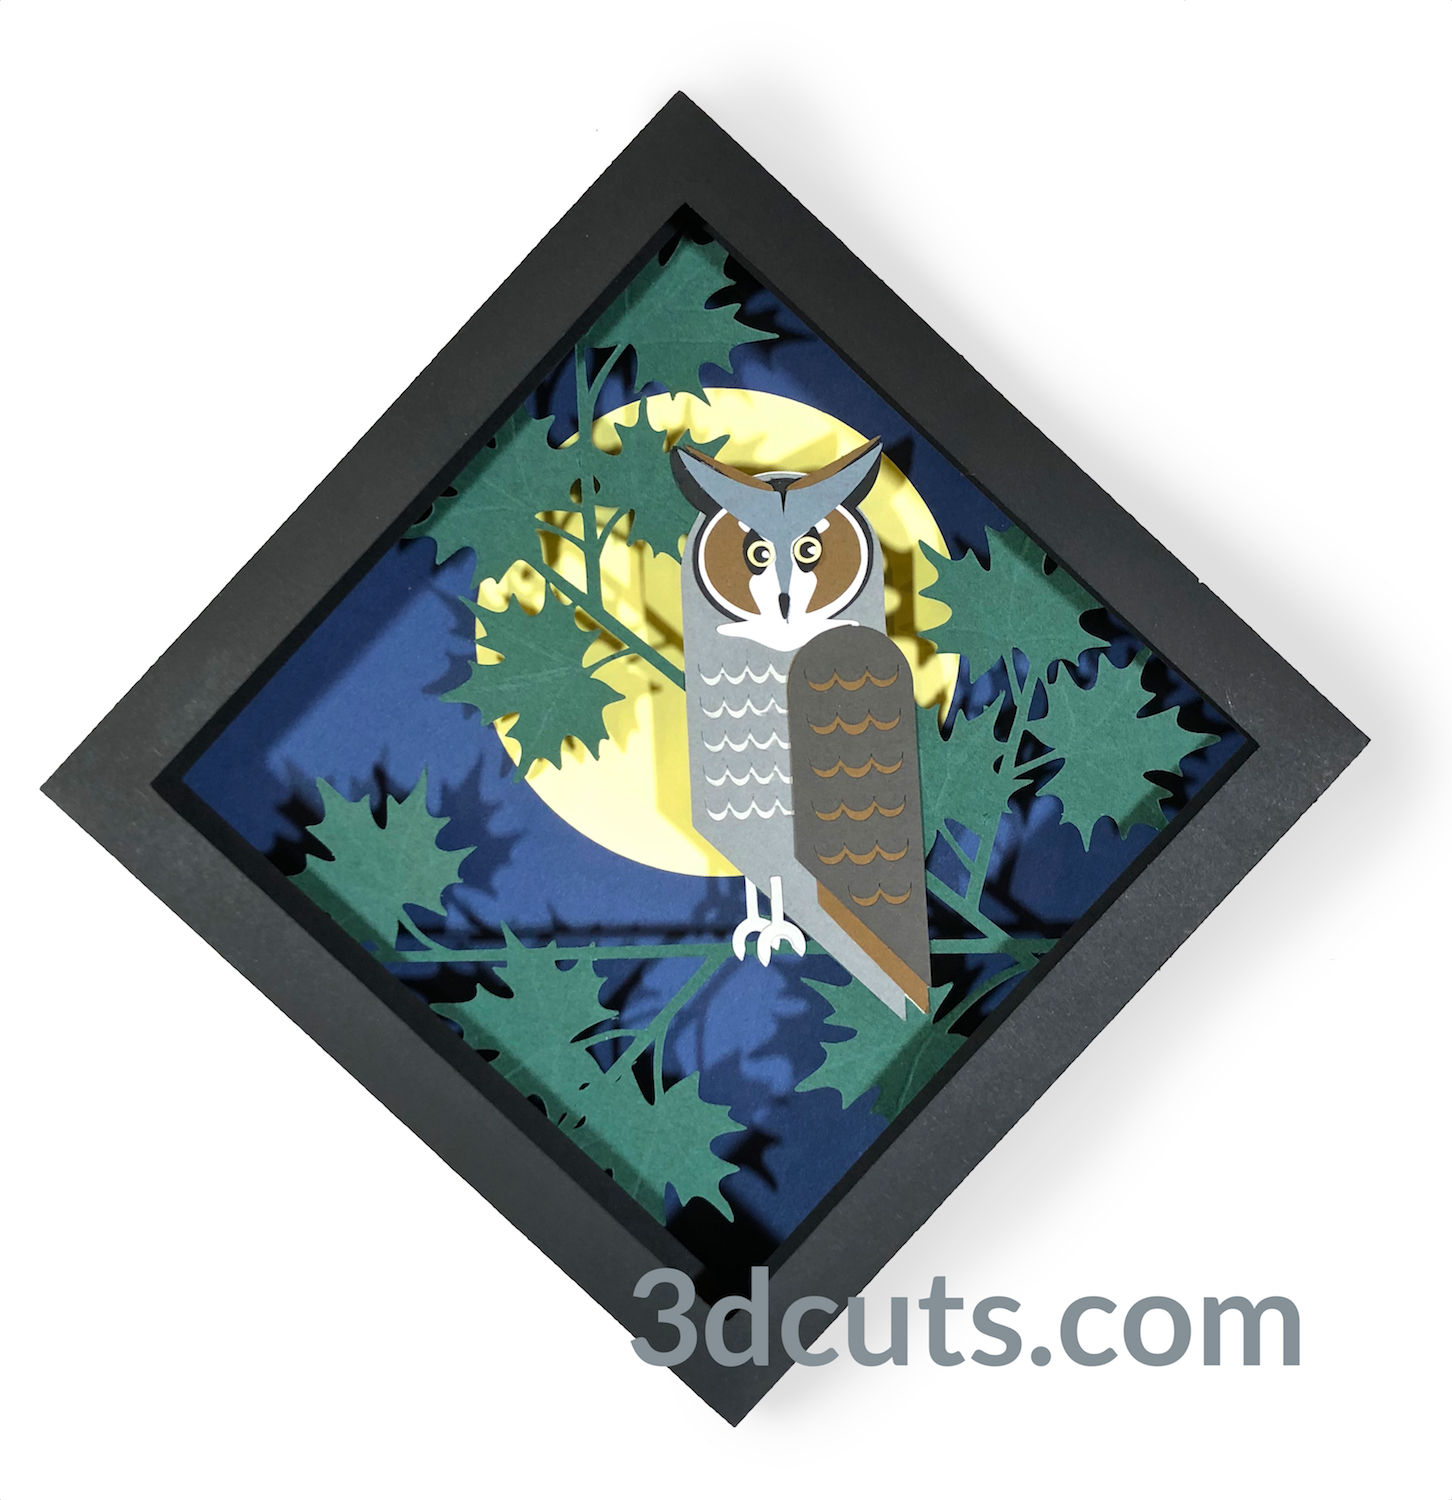 Great Horned Owl 3dcuts wWM.jpg